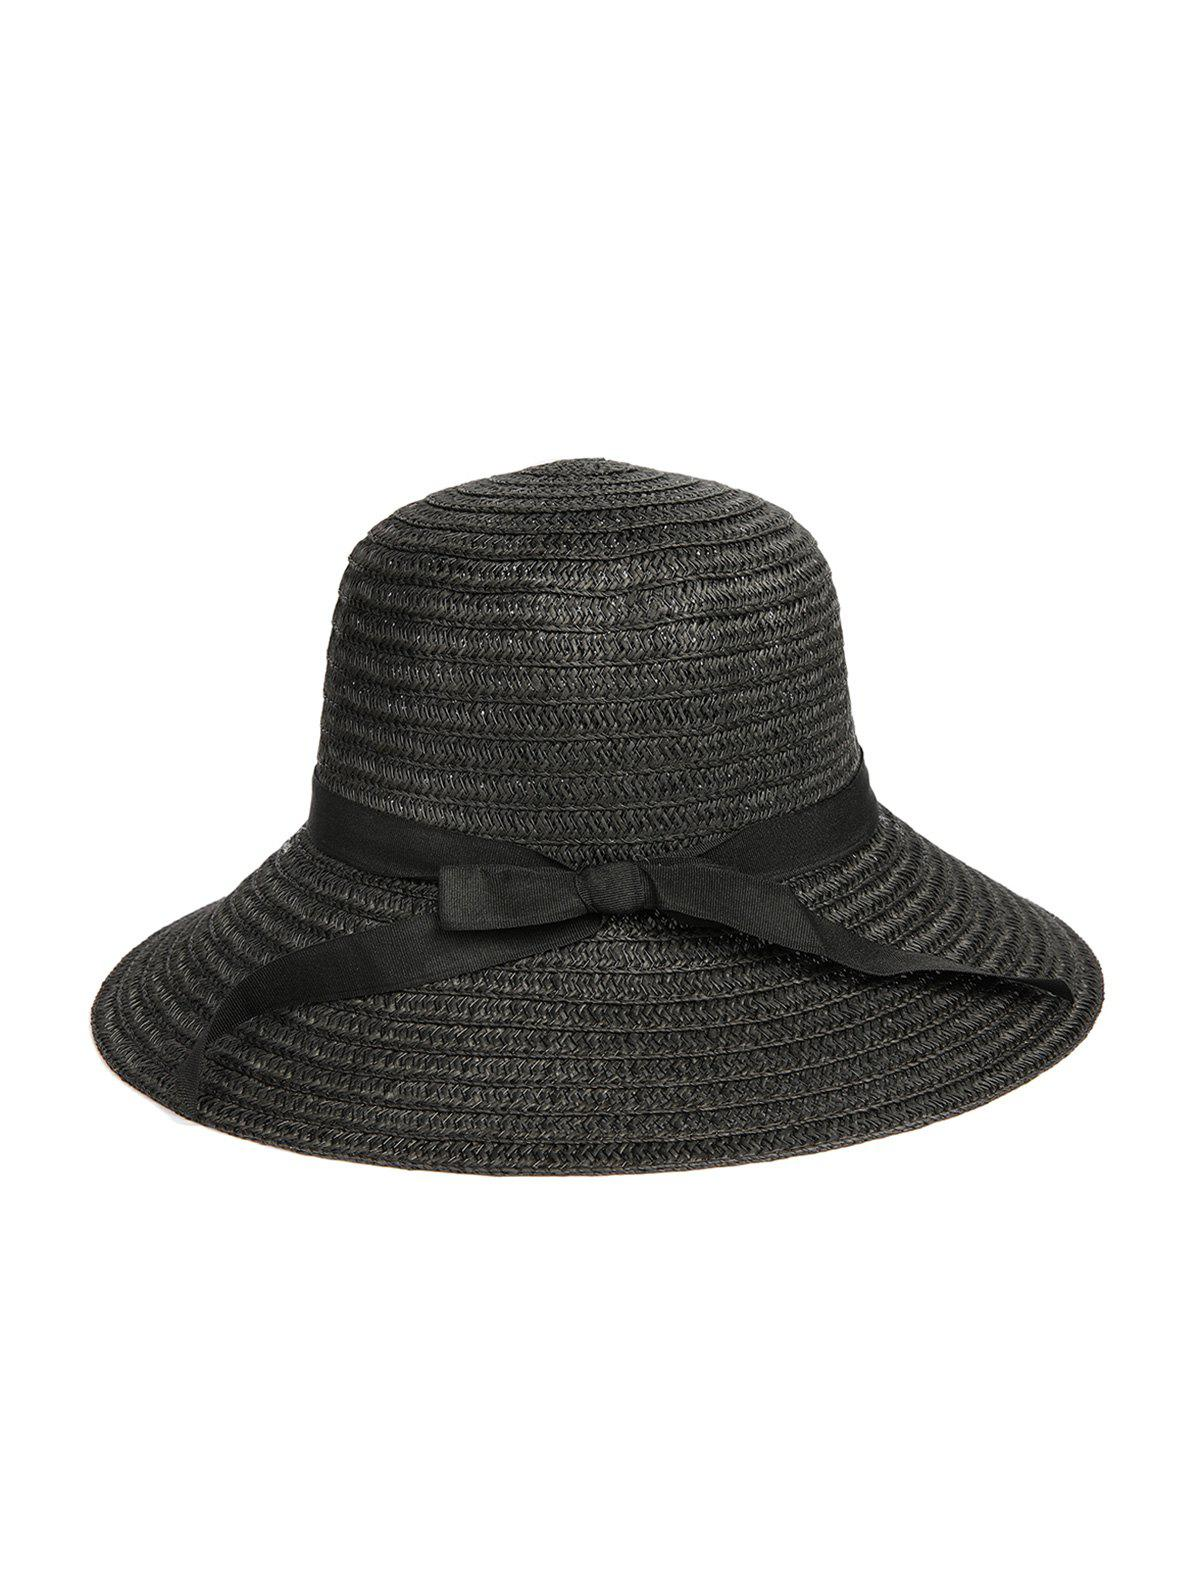 Ribbon Bowknot Sunproof Straw Hat - BLACK